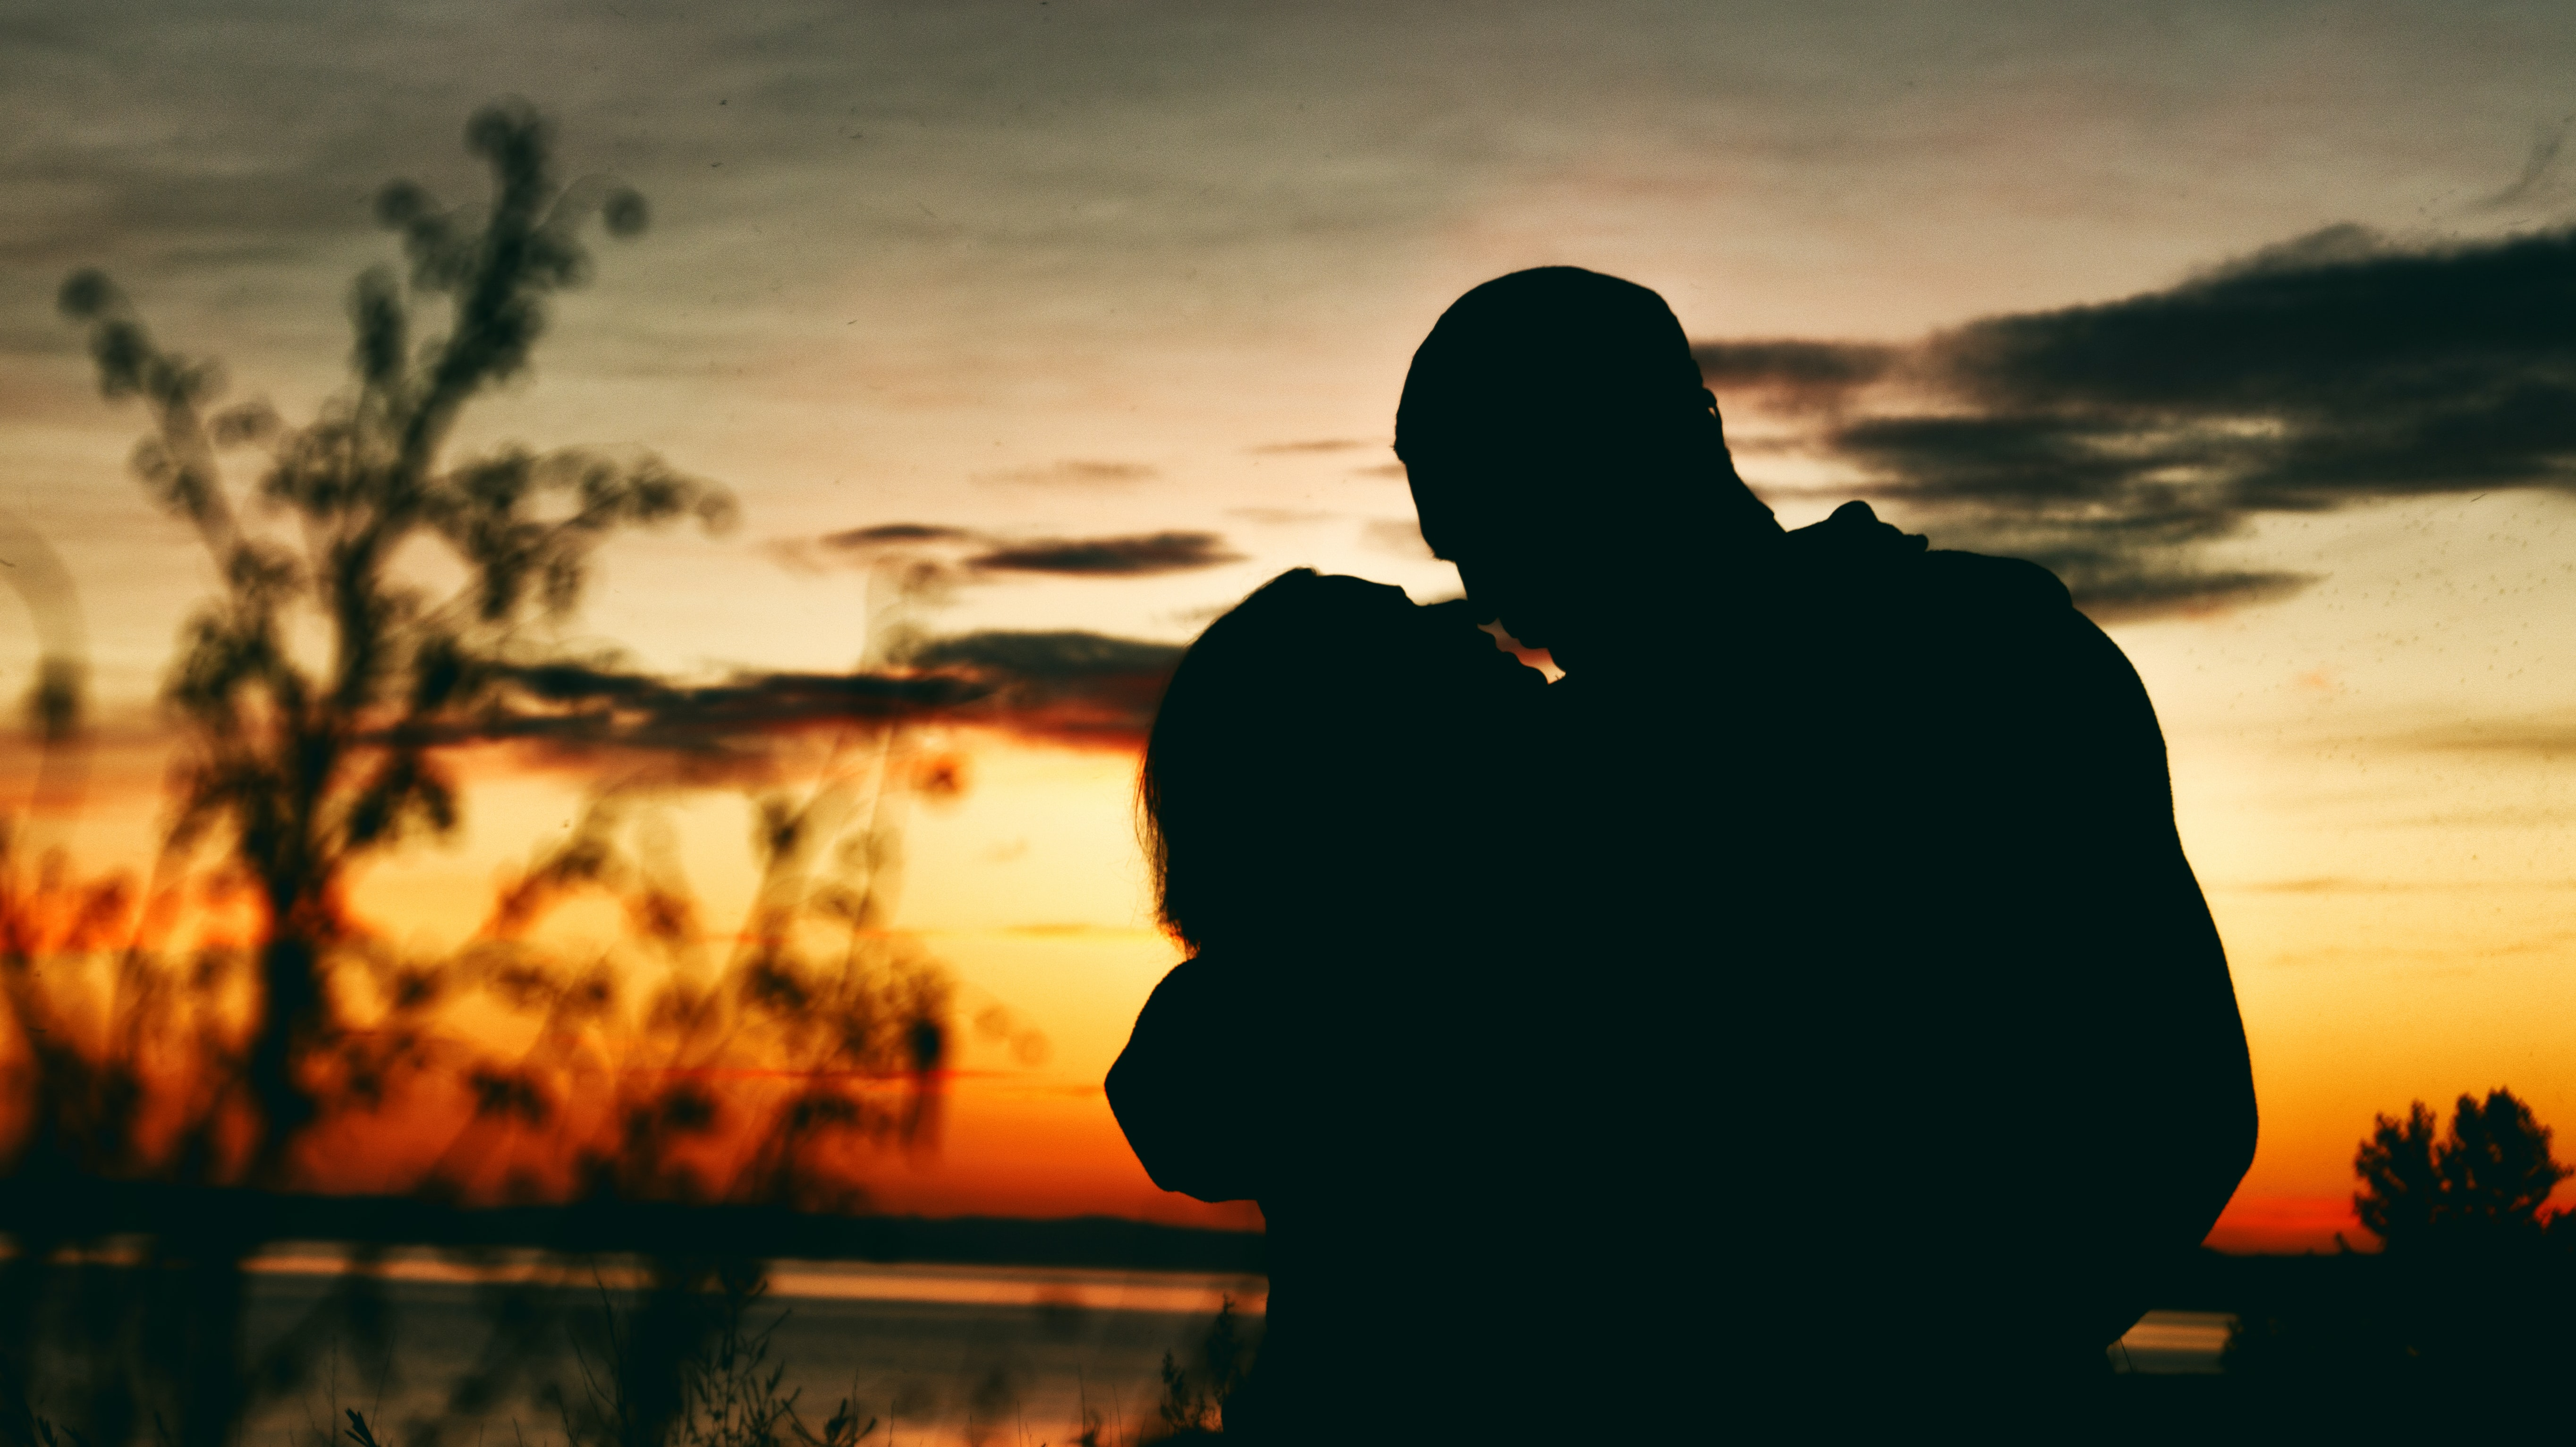 silhouette of man and woman hugging during sunset